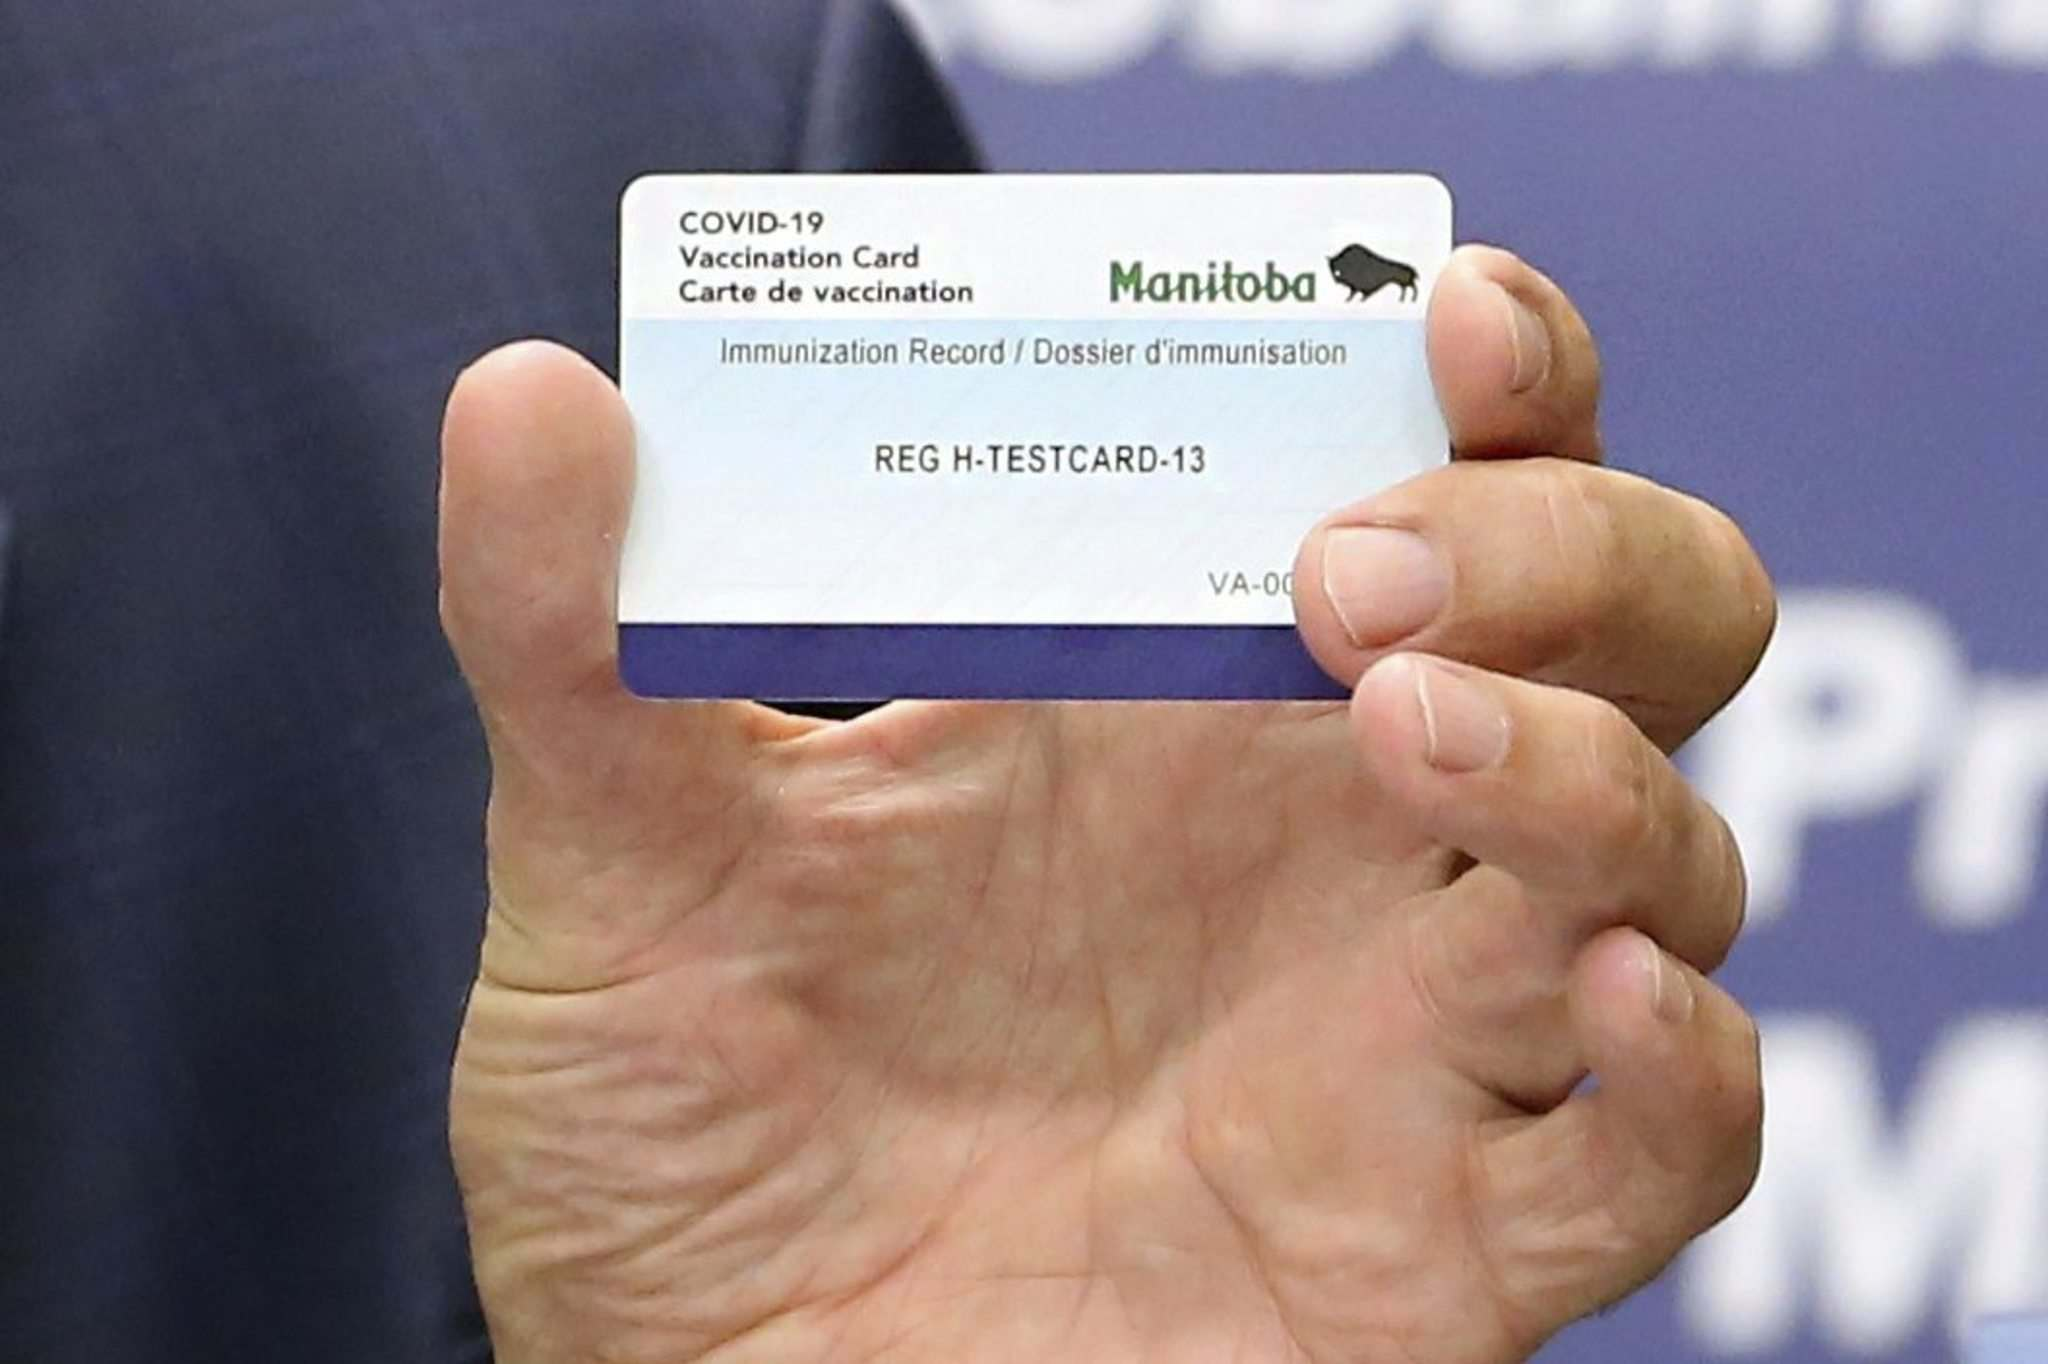 New rules will allow fully vaccinated Manitobans to take part in activities others cannot by using the government's secure immunization card and QR code as proof. (Kevin King / Pool files)